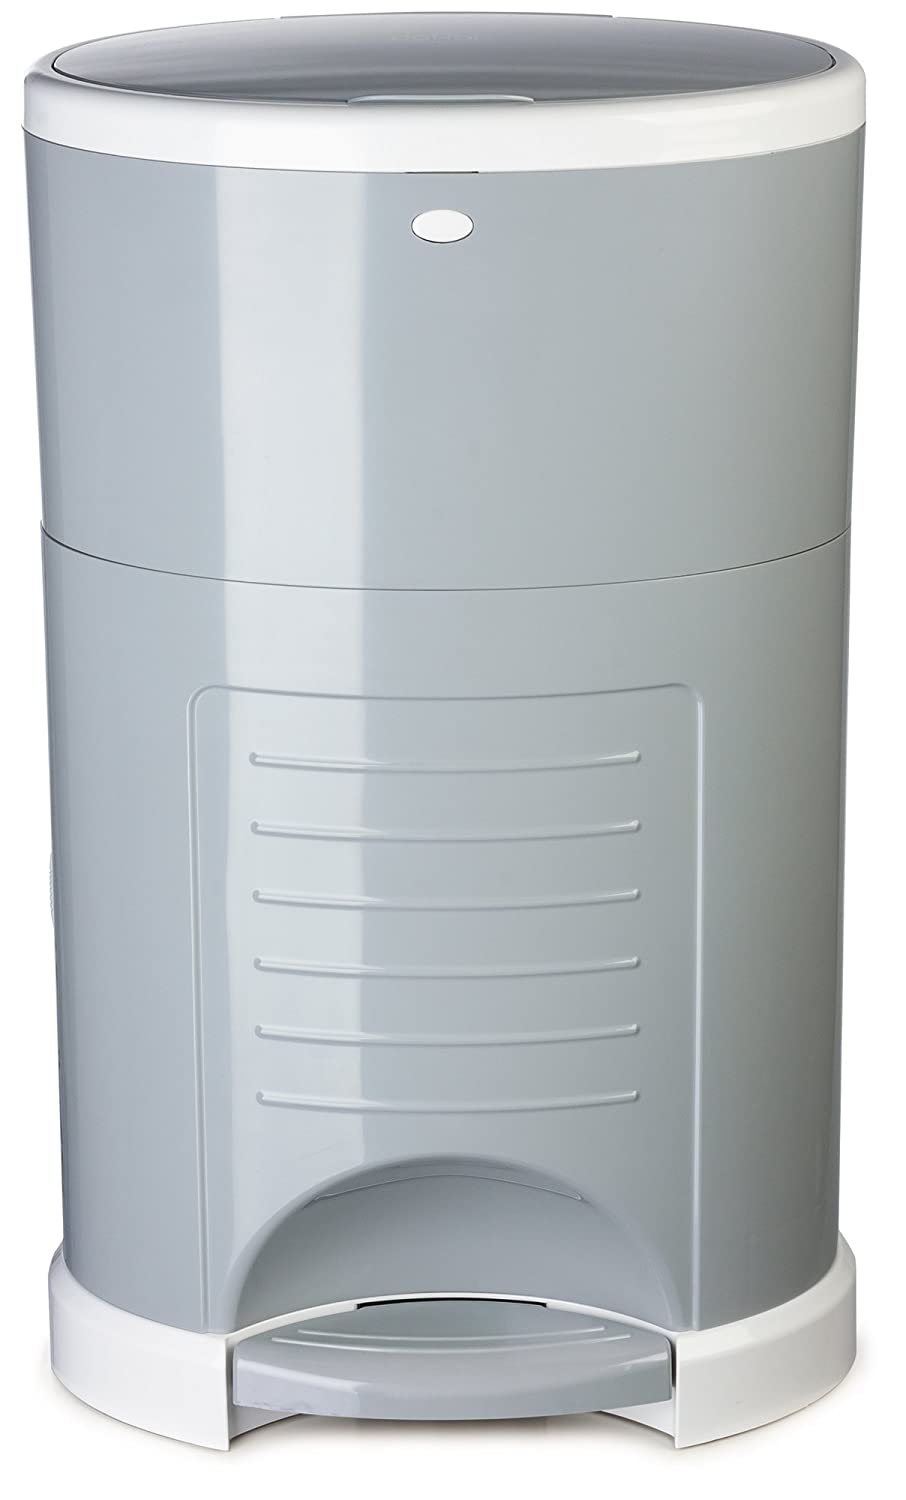 Garage dekor decor for Dekor mini diaper pail